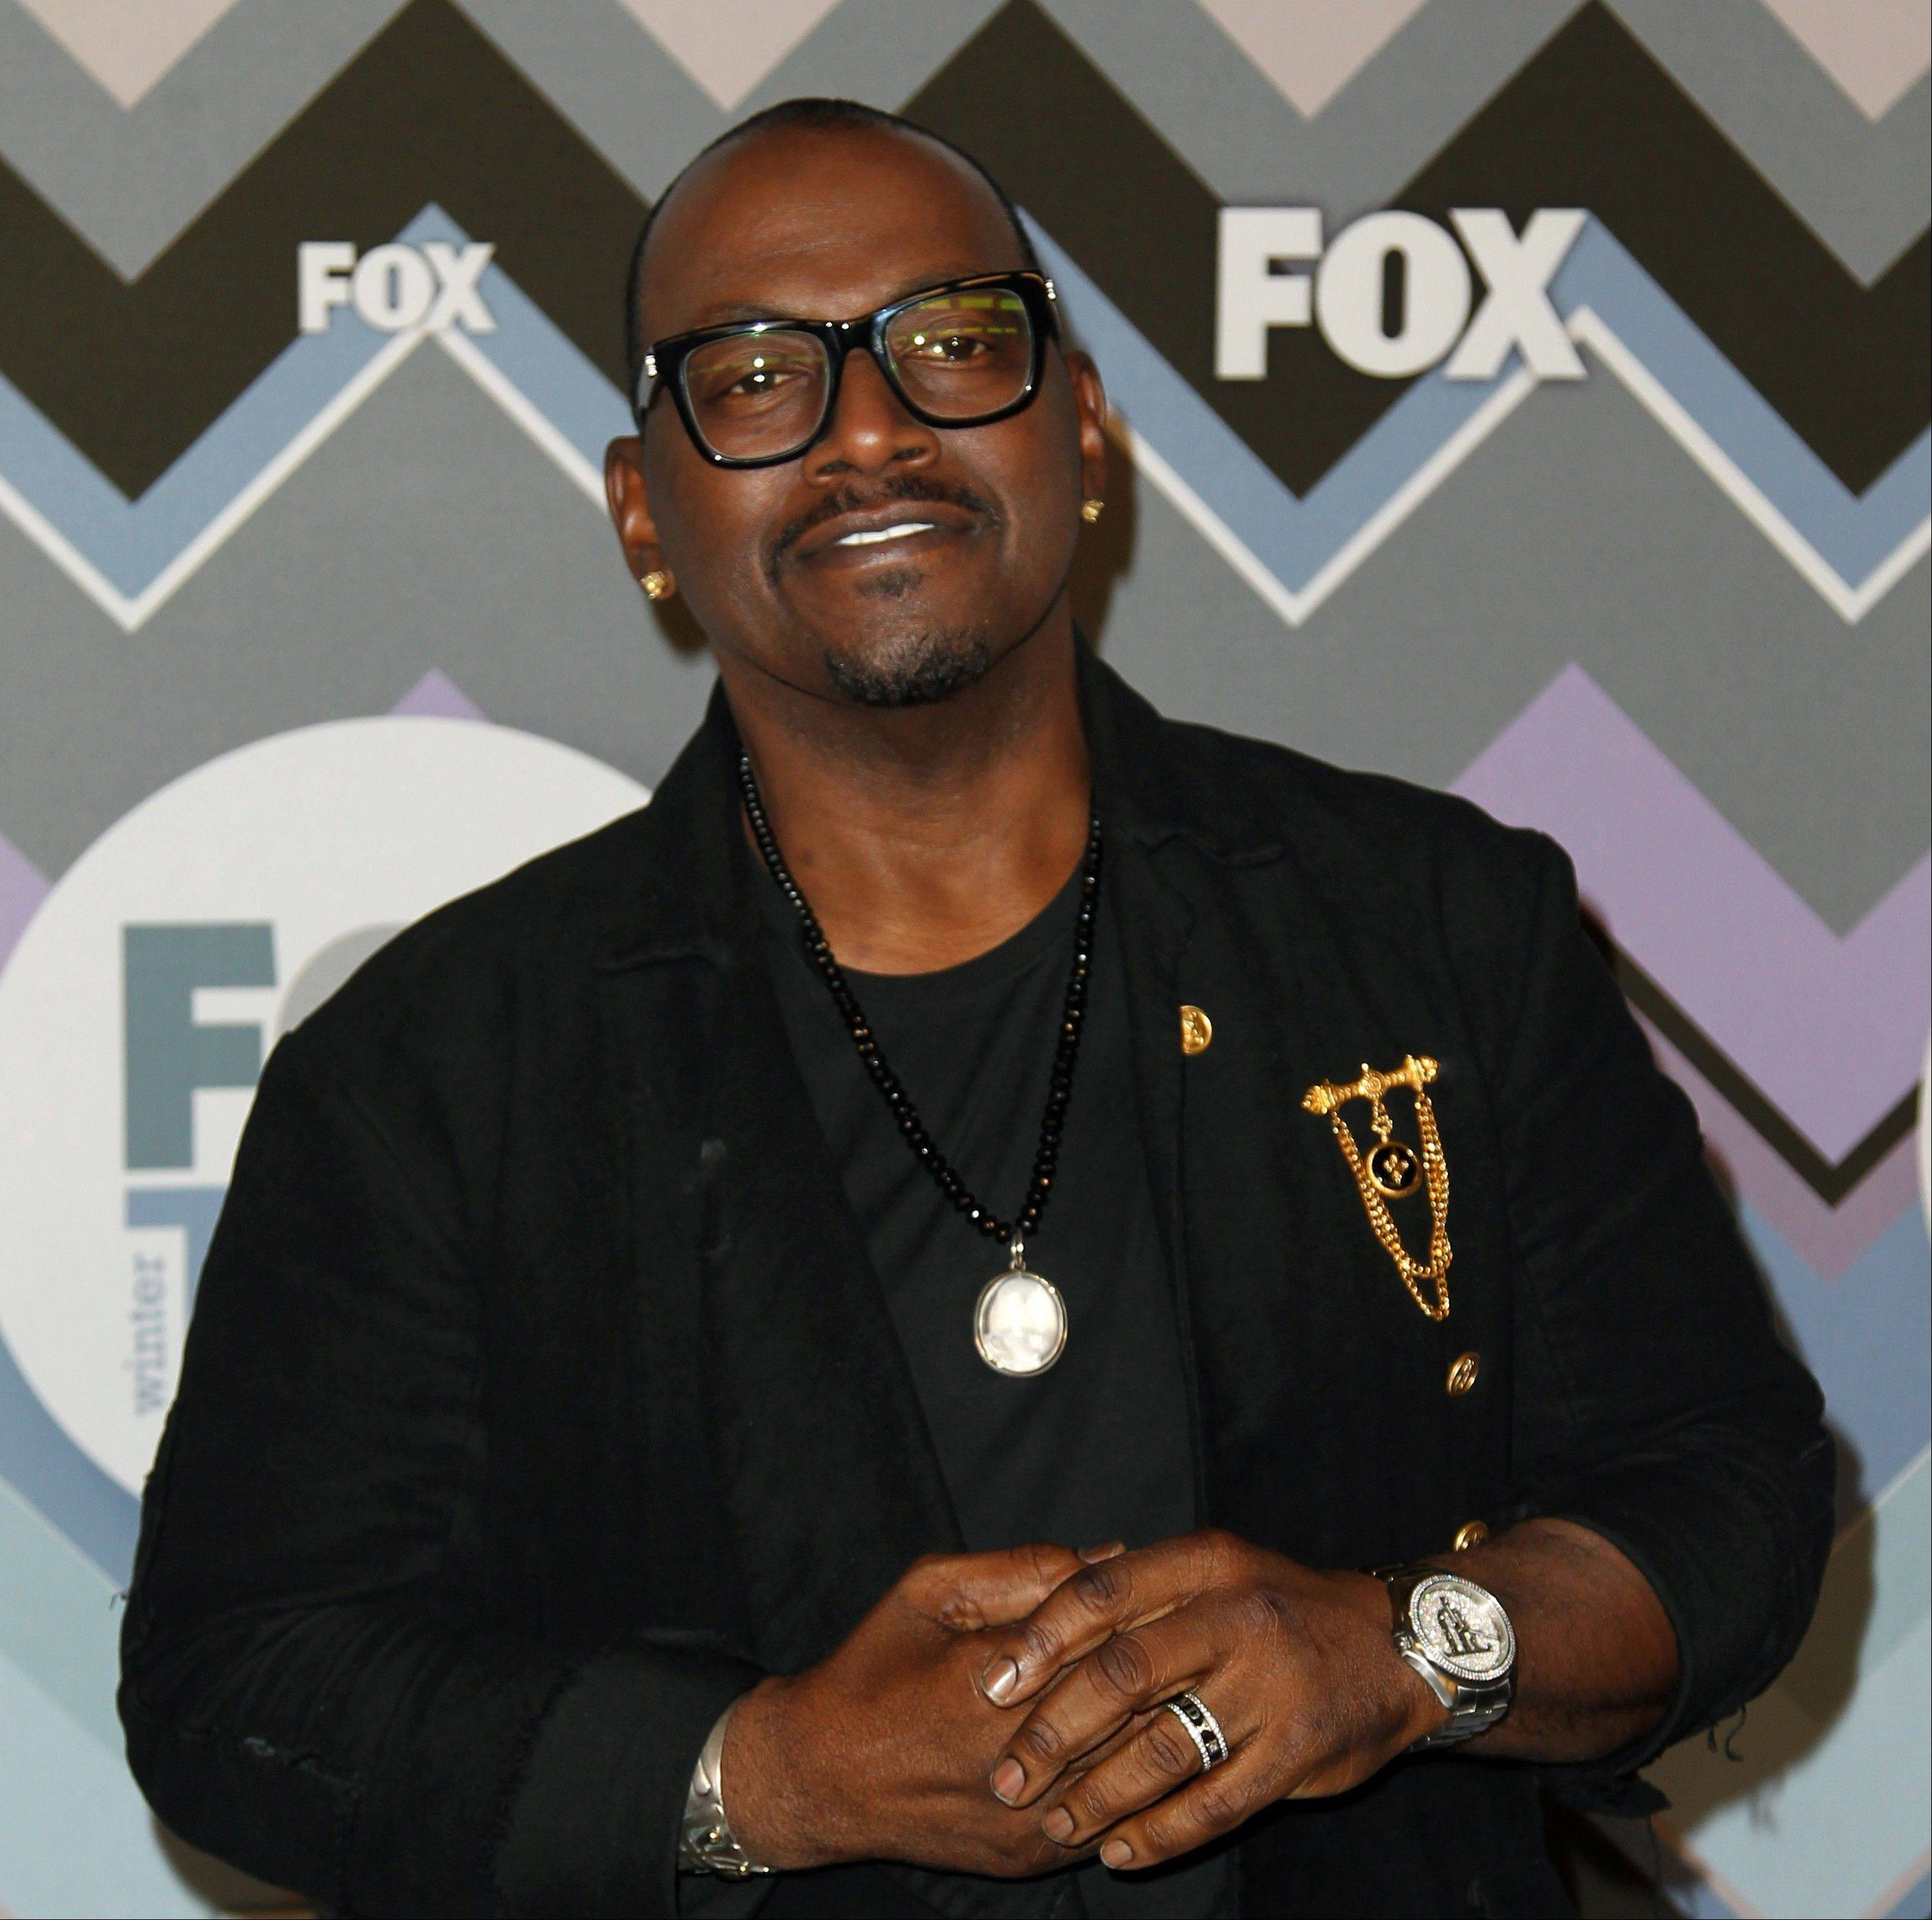 Randy Jackson, the 56-year-old �American Idol� judge, says he won�t be returning to the Fox talent competition after serving 12 seasons on the show�s judging panel.